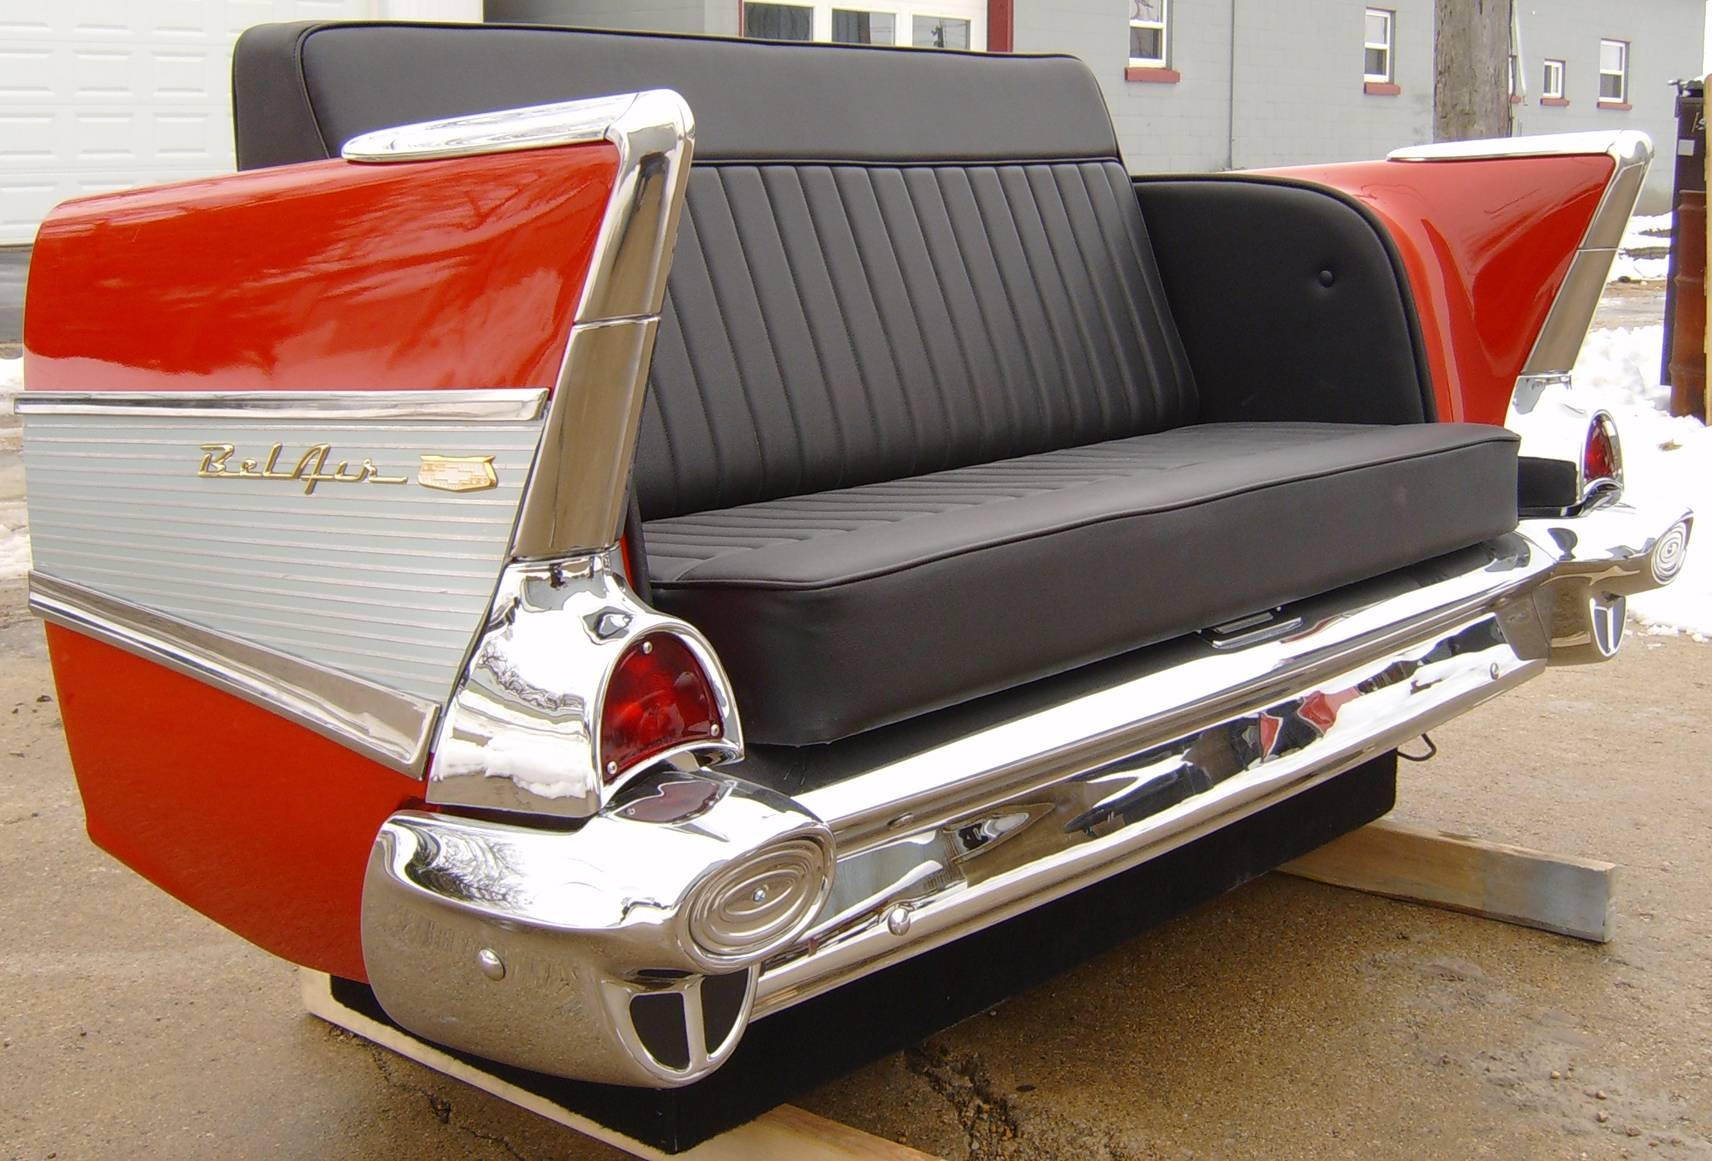 New Retro Cars : Restored Classic Car Furniture And Decor pertaining to Classic Sofas For Sale (Image 24 of 30)